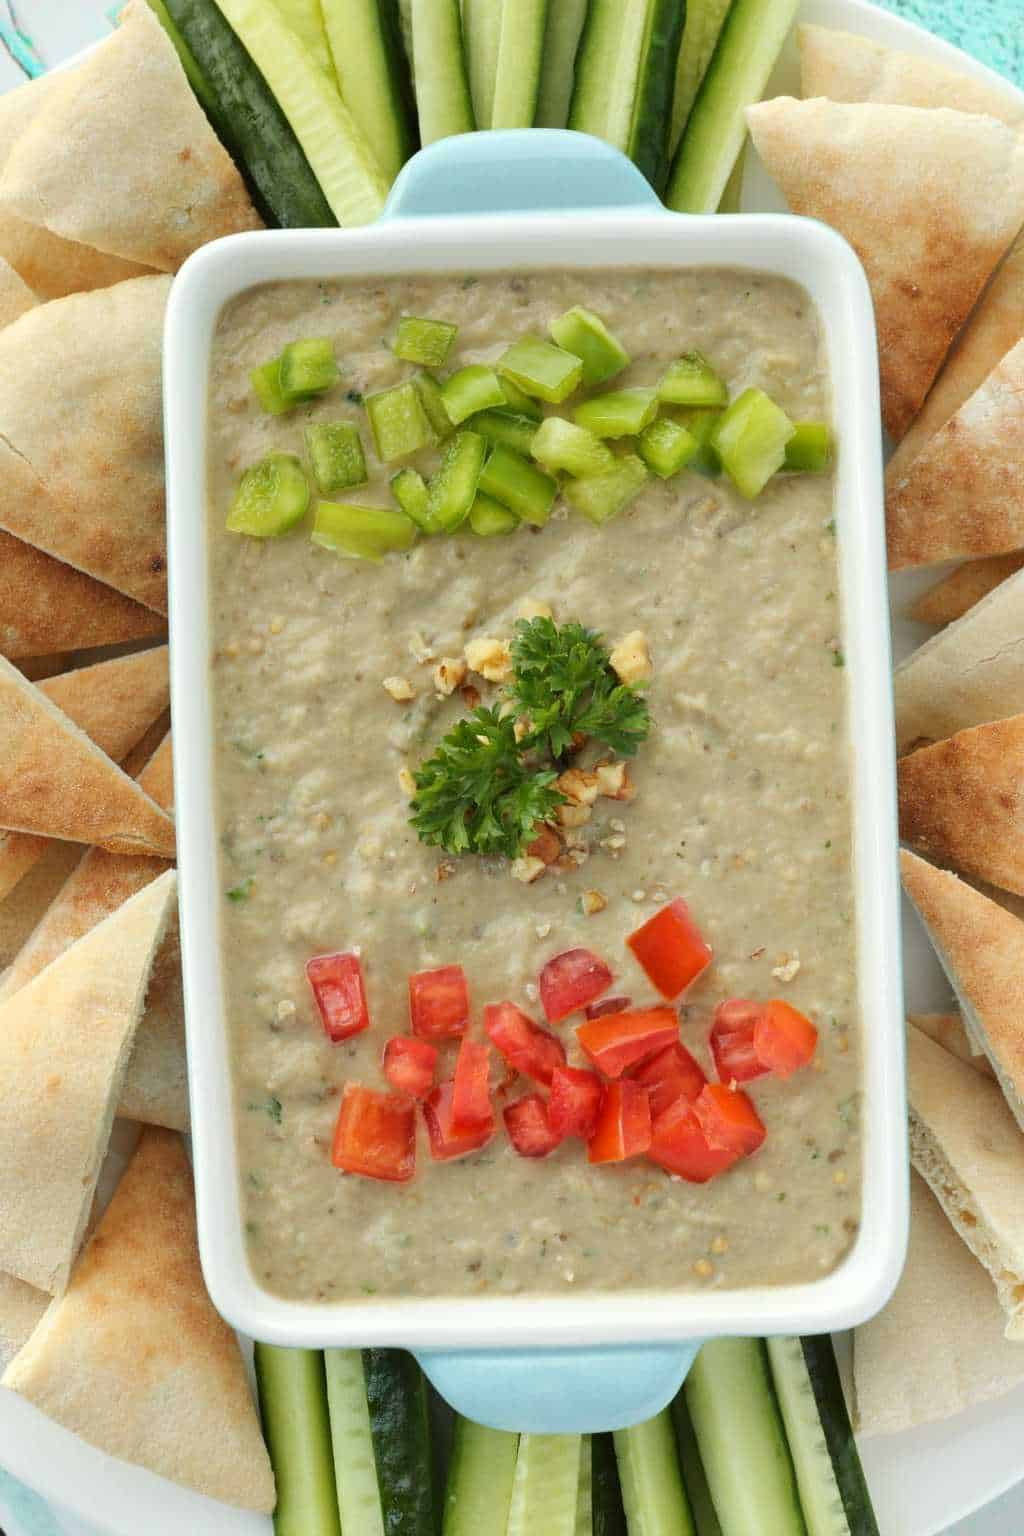 Eggplant Dip in a blue and white serving dish surrounded by pita breads and cucumber slices.